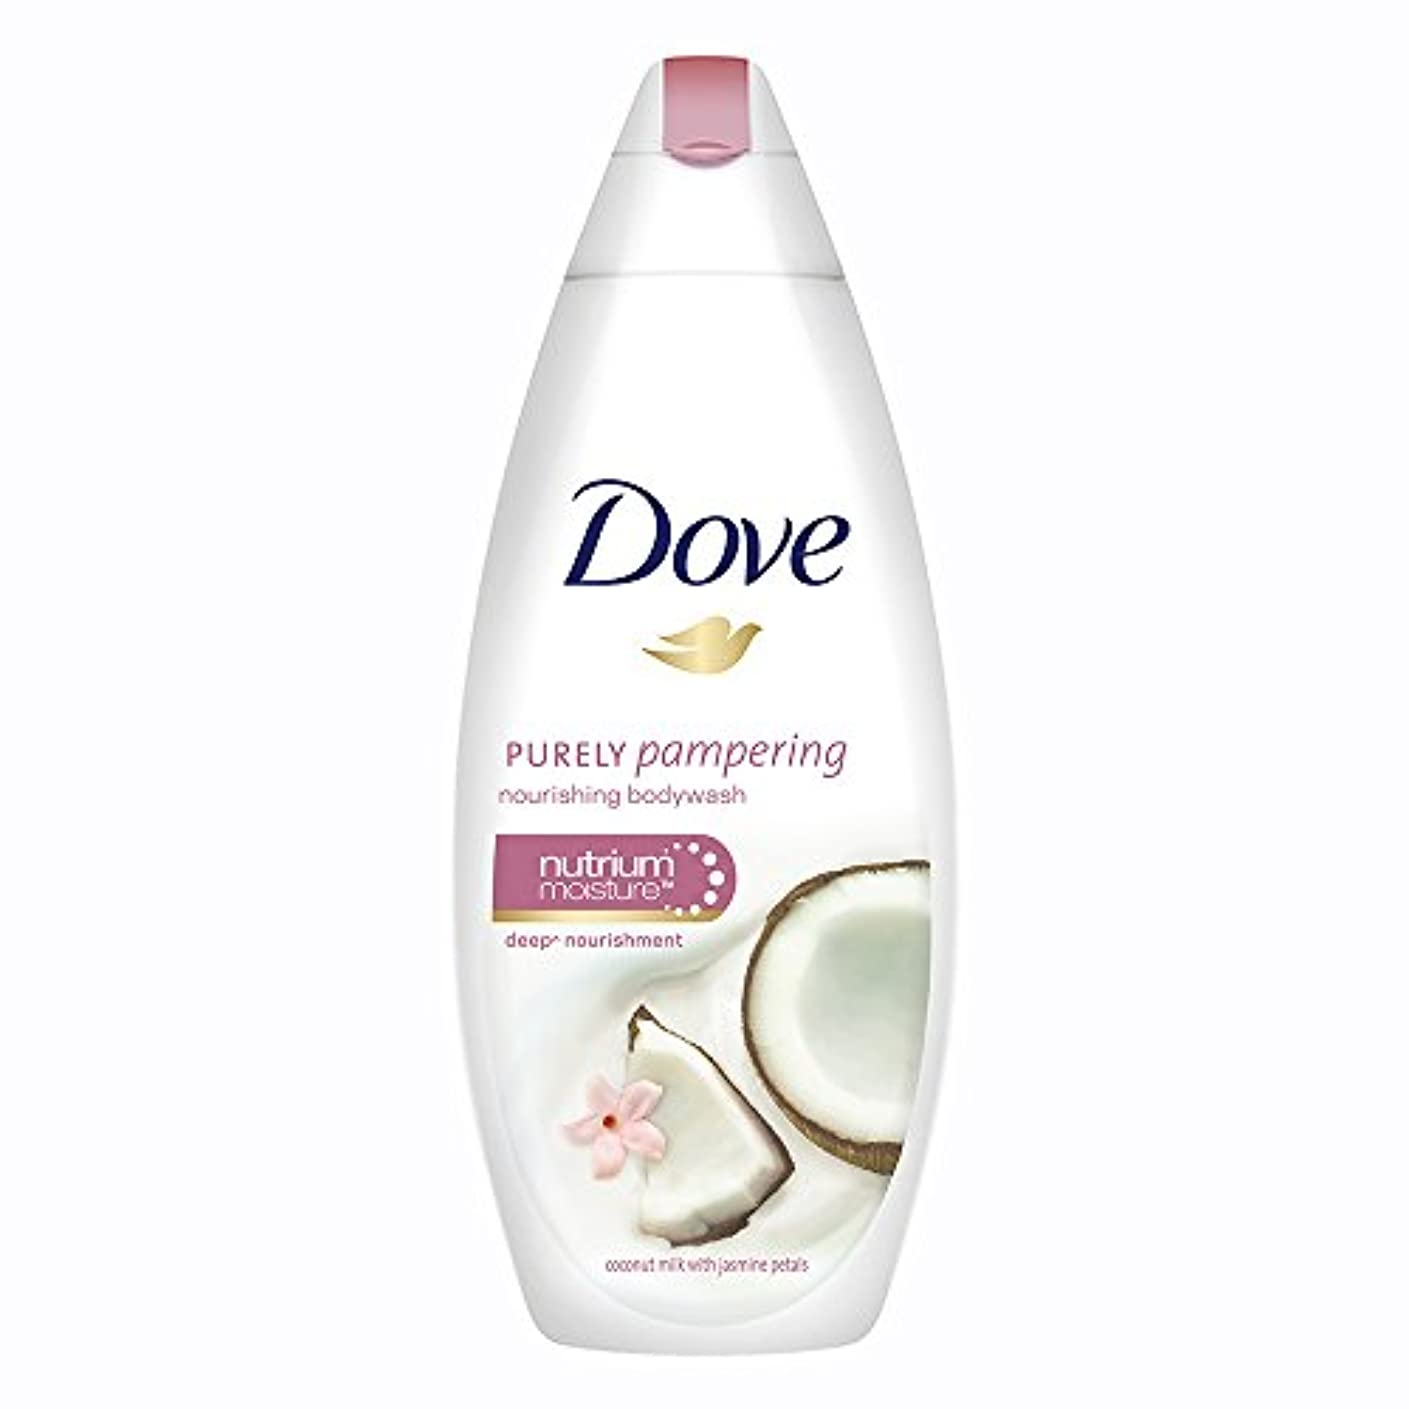 Dove Purely Pampering Coconut Milk and Jas Petals Body Wash, 190ml